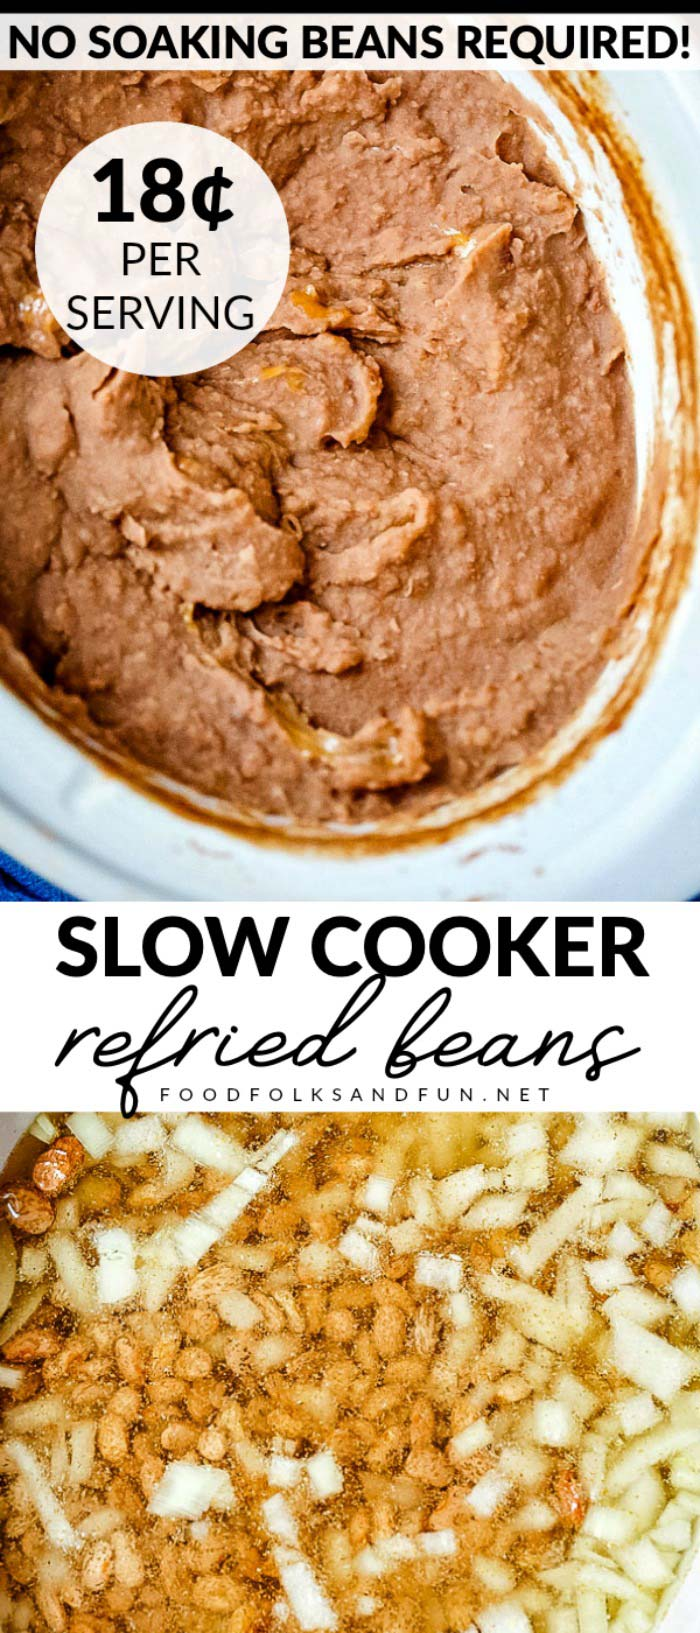 This Restaurant Style Refried Beans recipe is made in a slow cooker and no bean soaking is required! This recipe serves 12 and costs $2.13 to make. That's just 18¢ per serving! via @foodfolksandfun